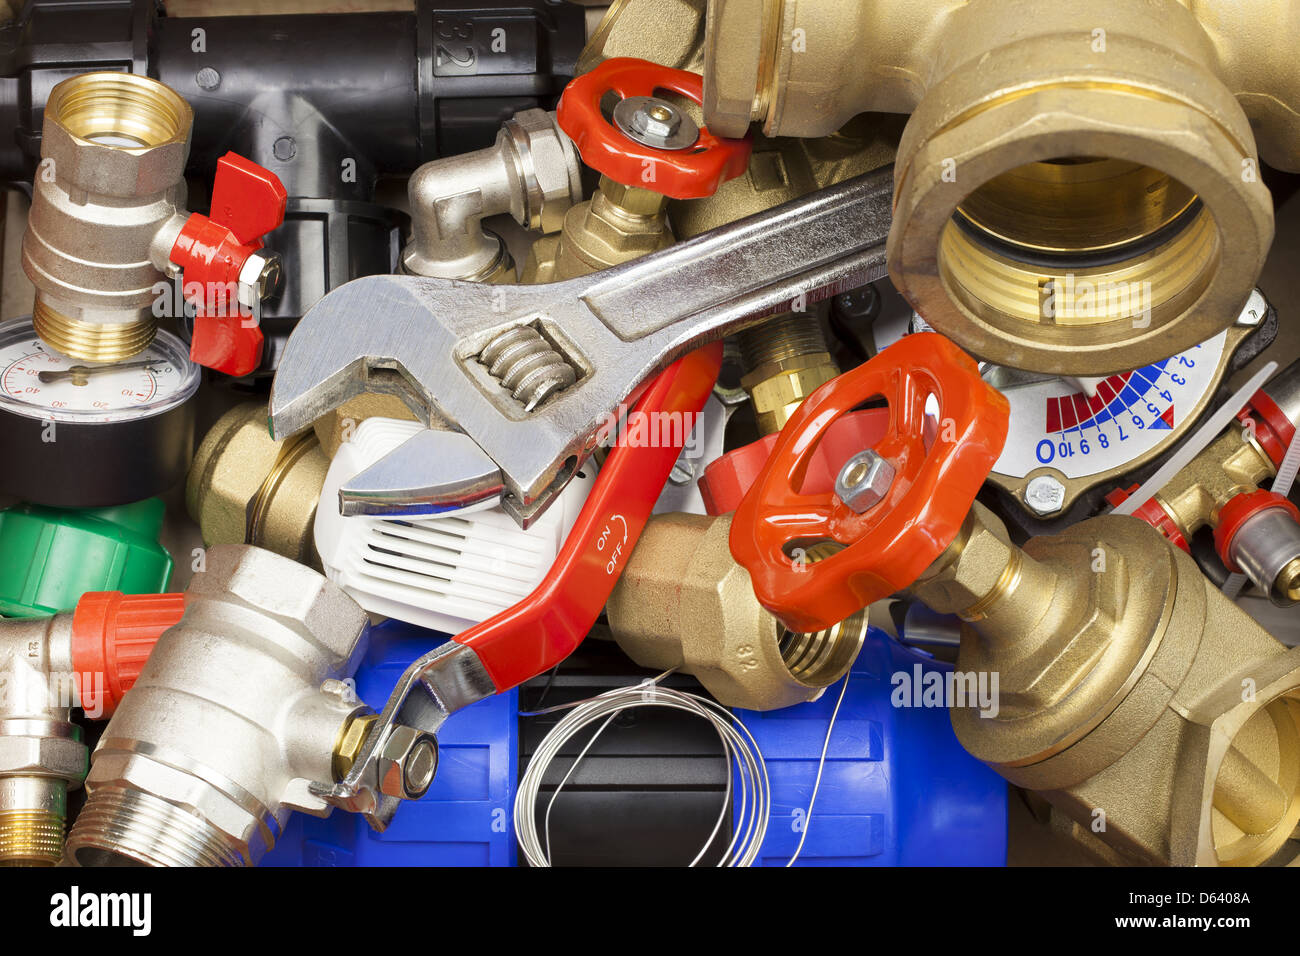 Plumbing High Resolution Stock Photography and Images - Alamy